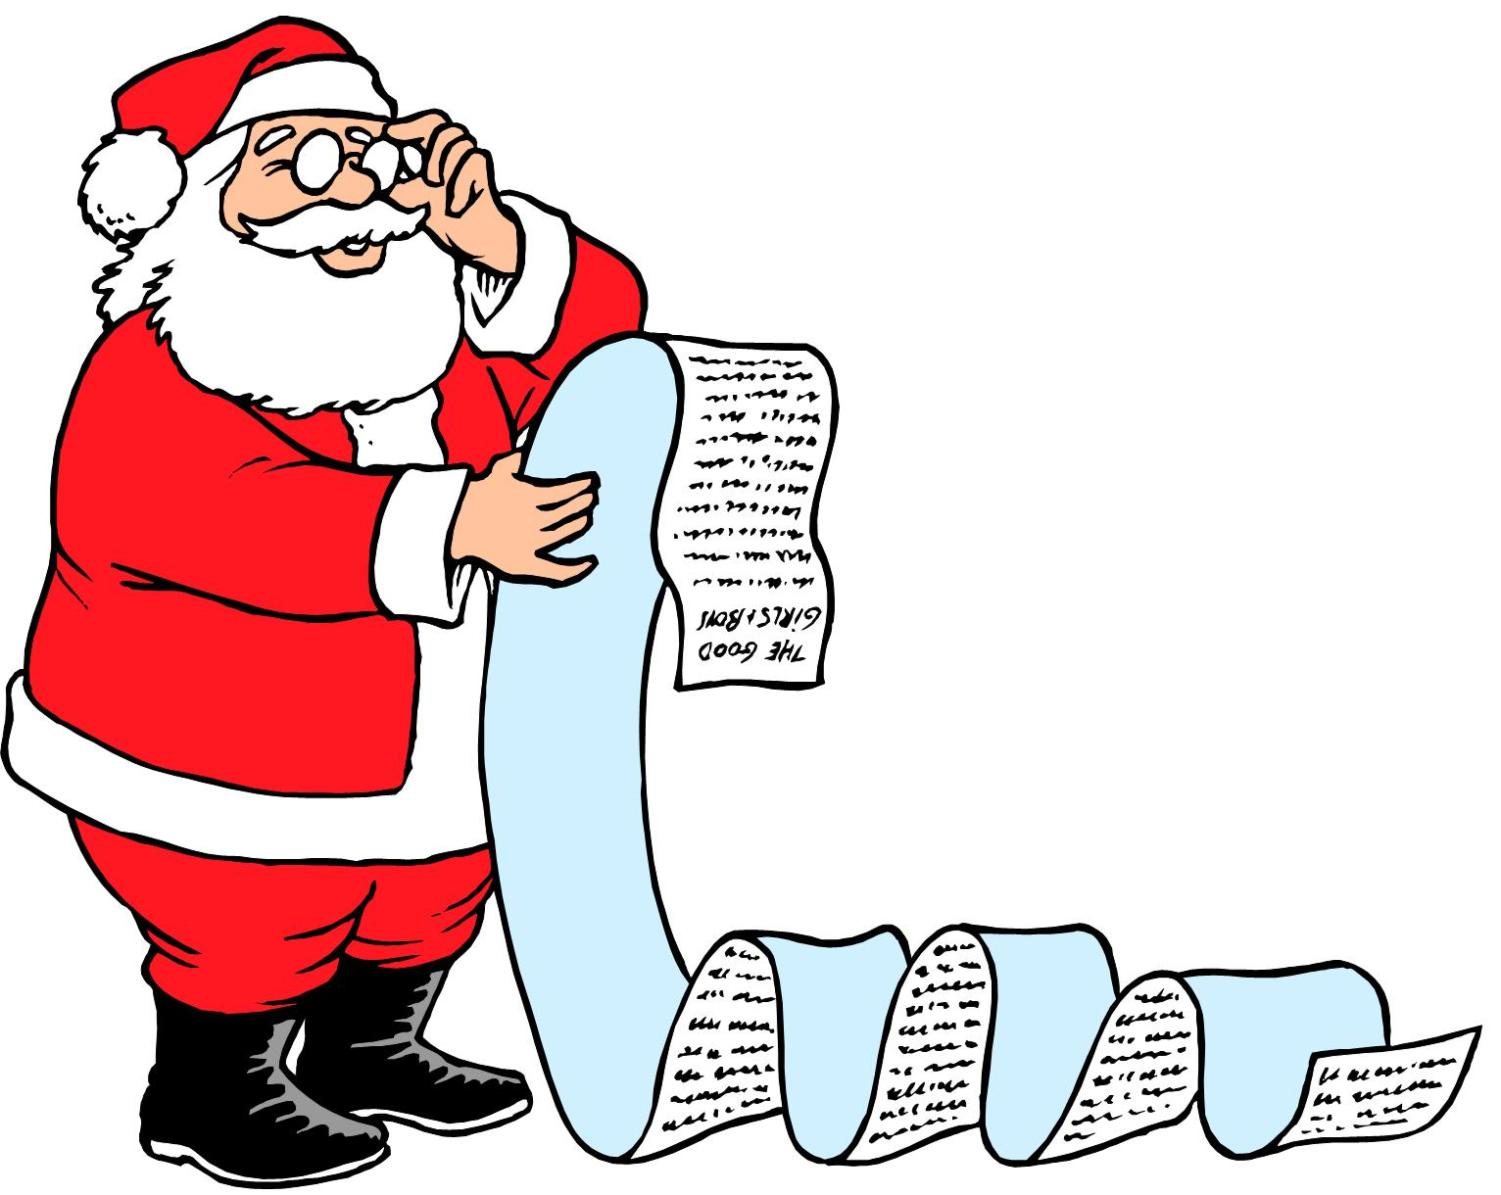 Santa checks his list for naughty or nice kids.